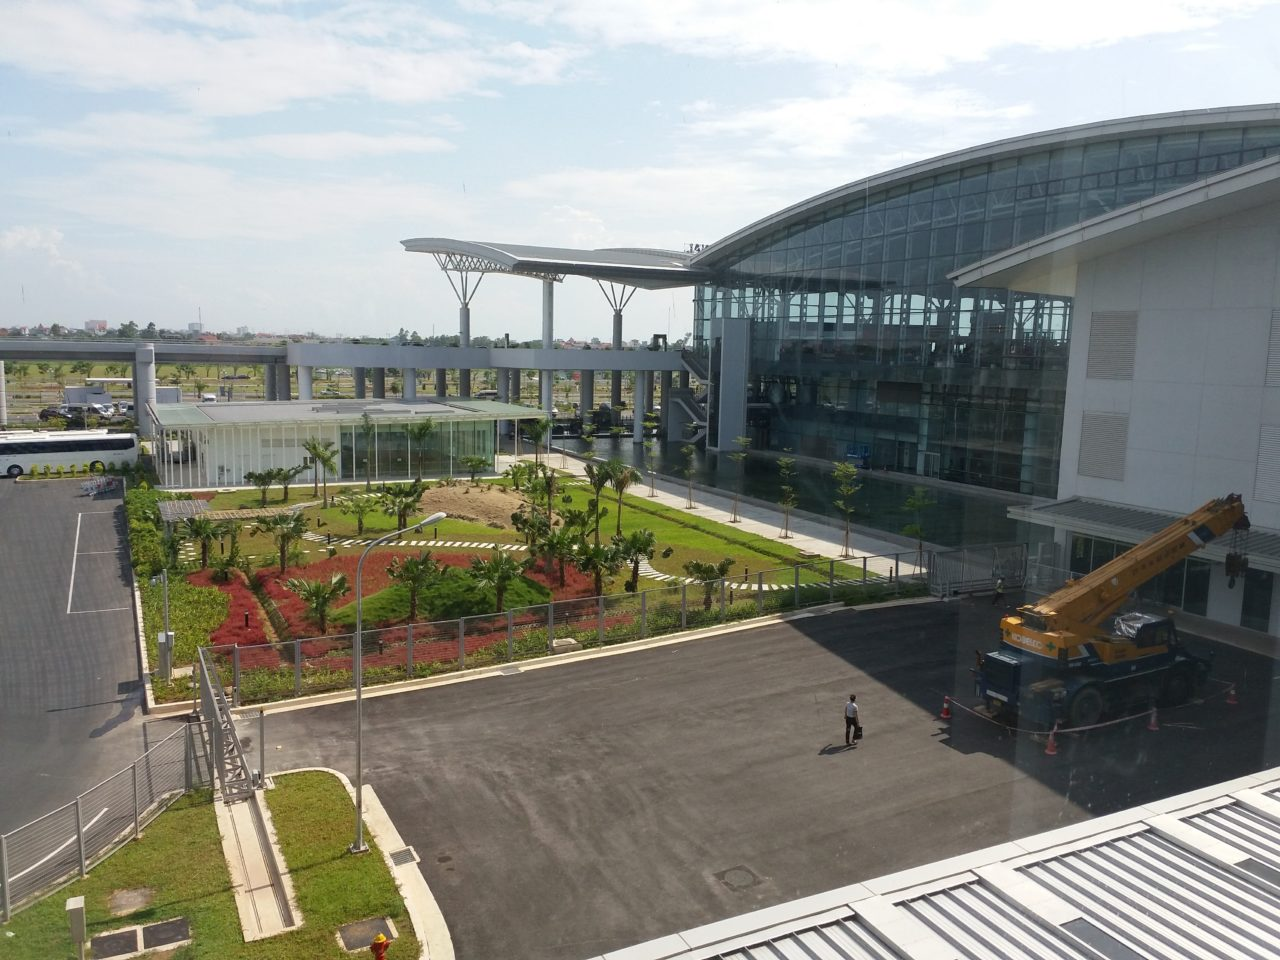 Airport courtyard